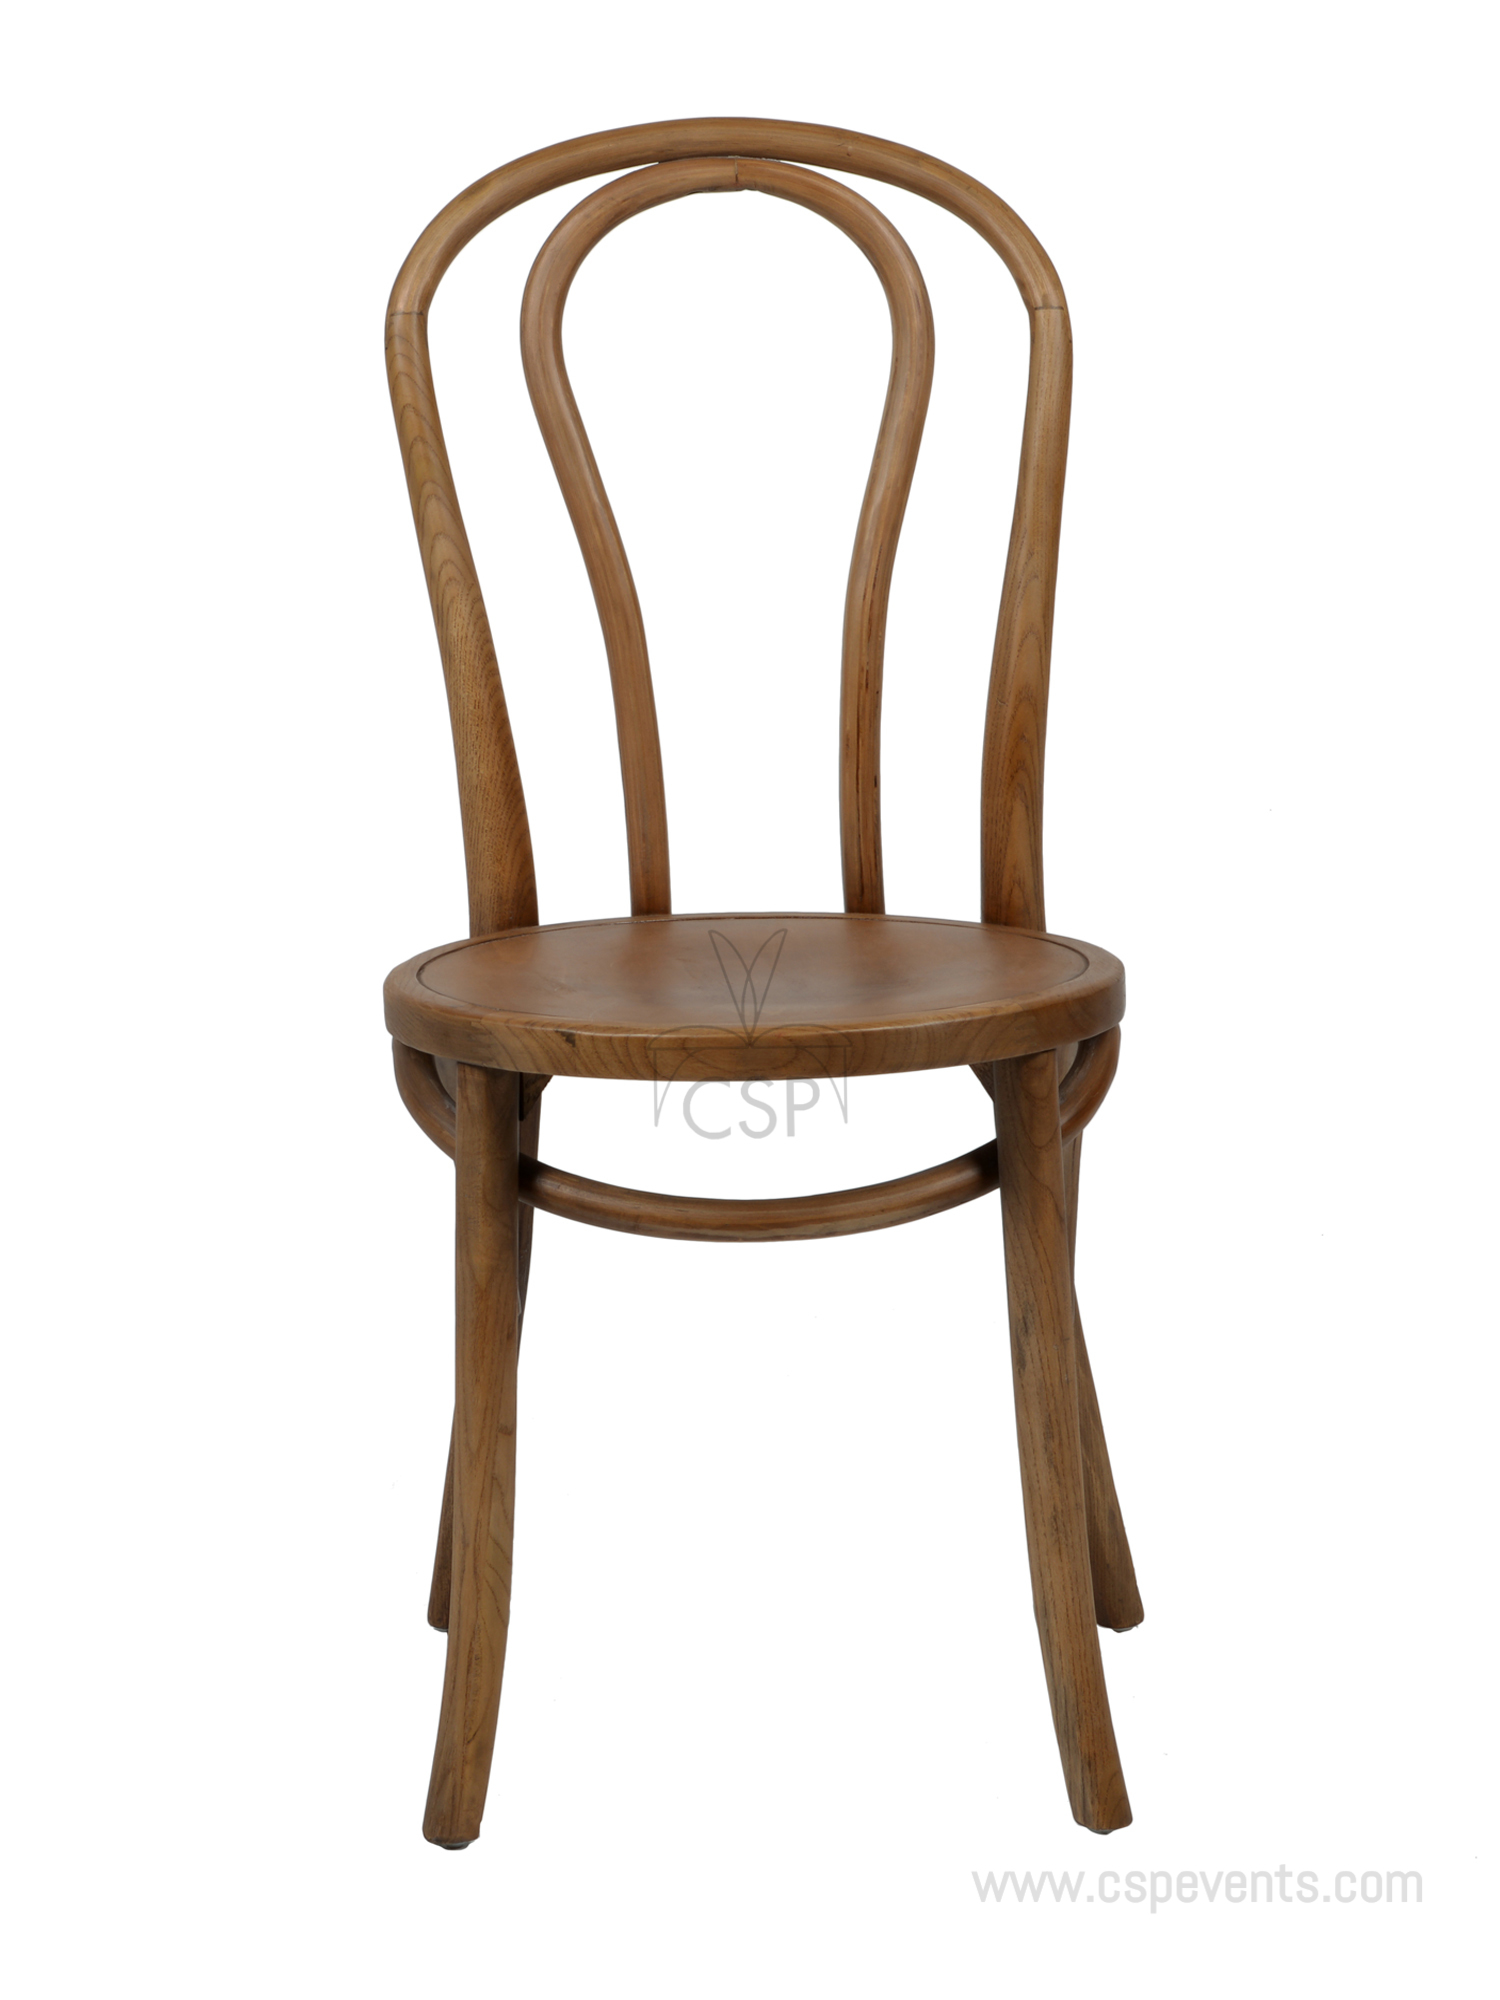 Bent Wood Chairs Bentwood Stackable Chair With X02 Seat Csp